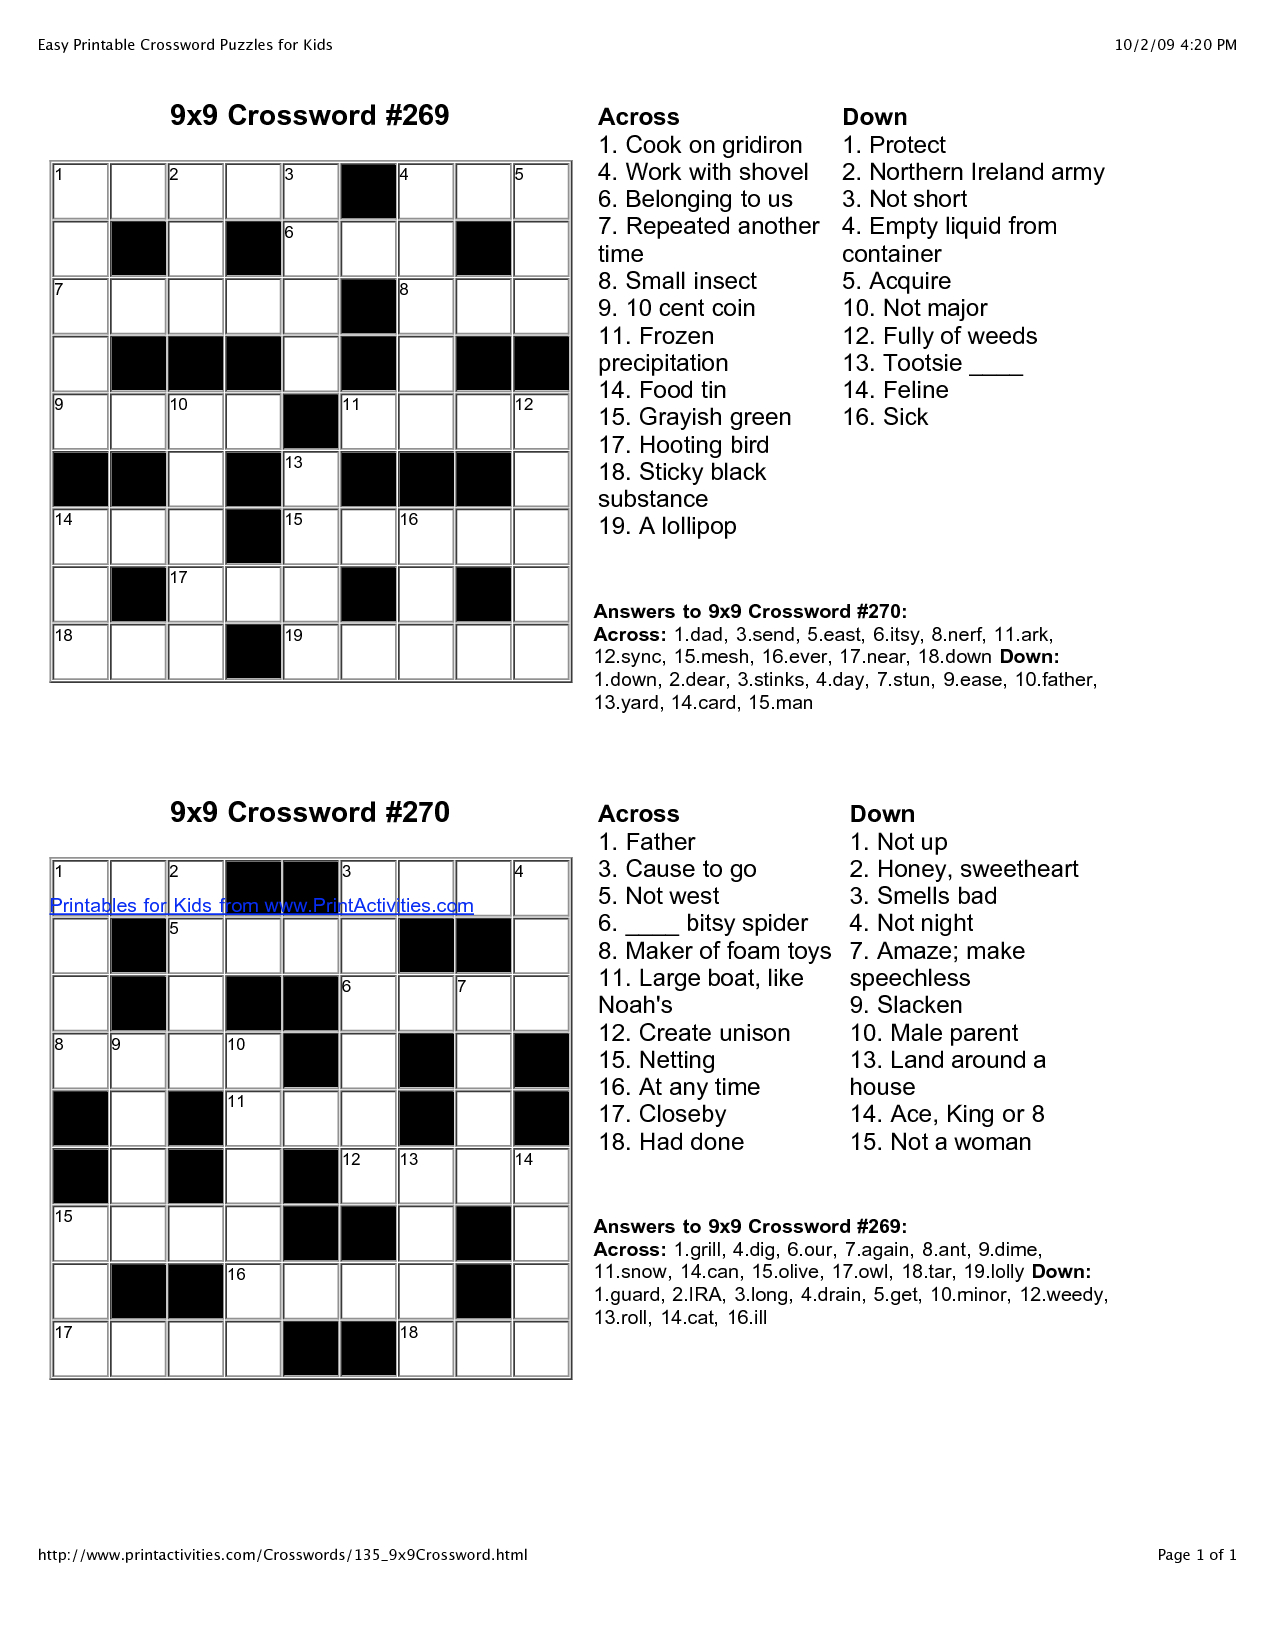 Easy Crossword Puzzles | I'm Going To Be An Slp! | Kids Crossword - Bible Crossword Puzzles Printable With Answers